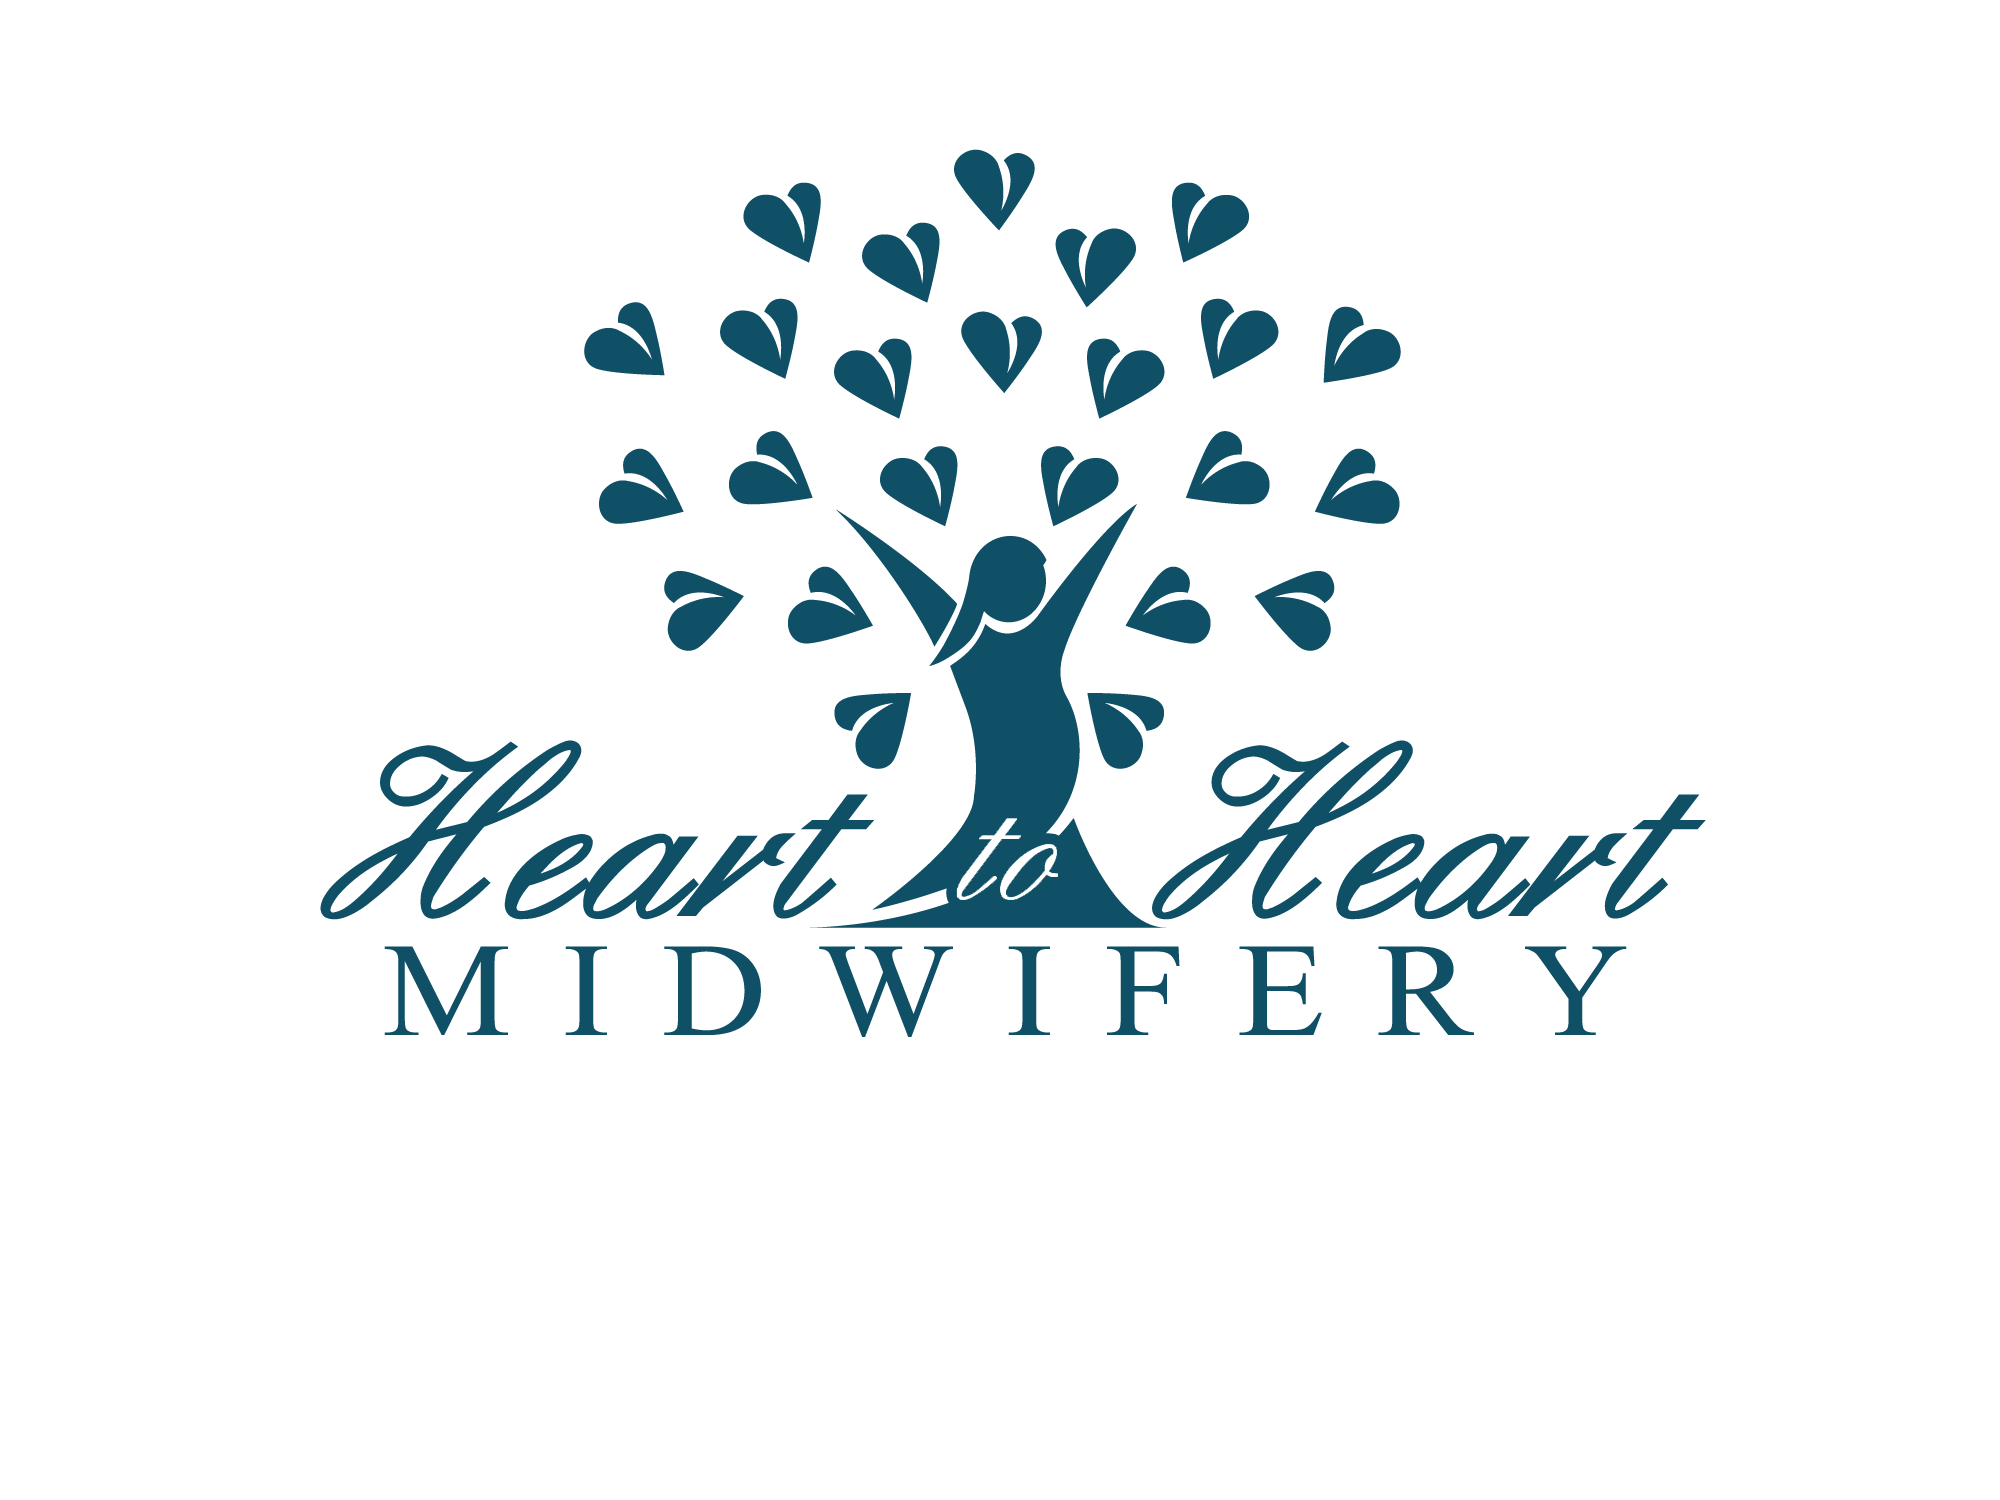 Heart to Heart Midwifery